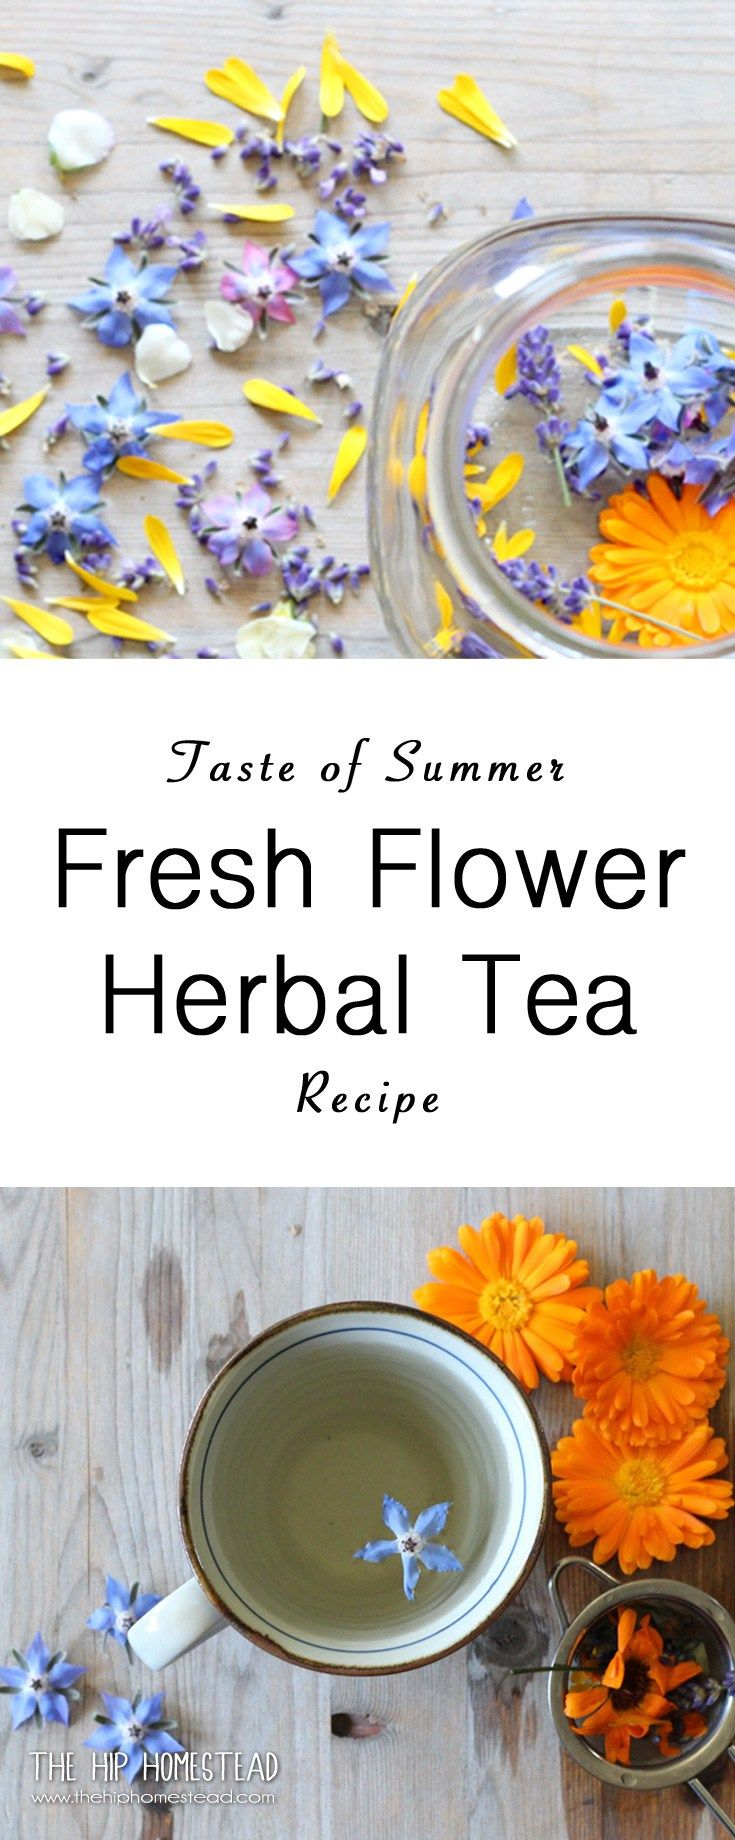 Taste of Summer Fresh Flower Herbal Tea The Hip Homestead